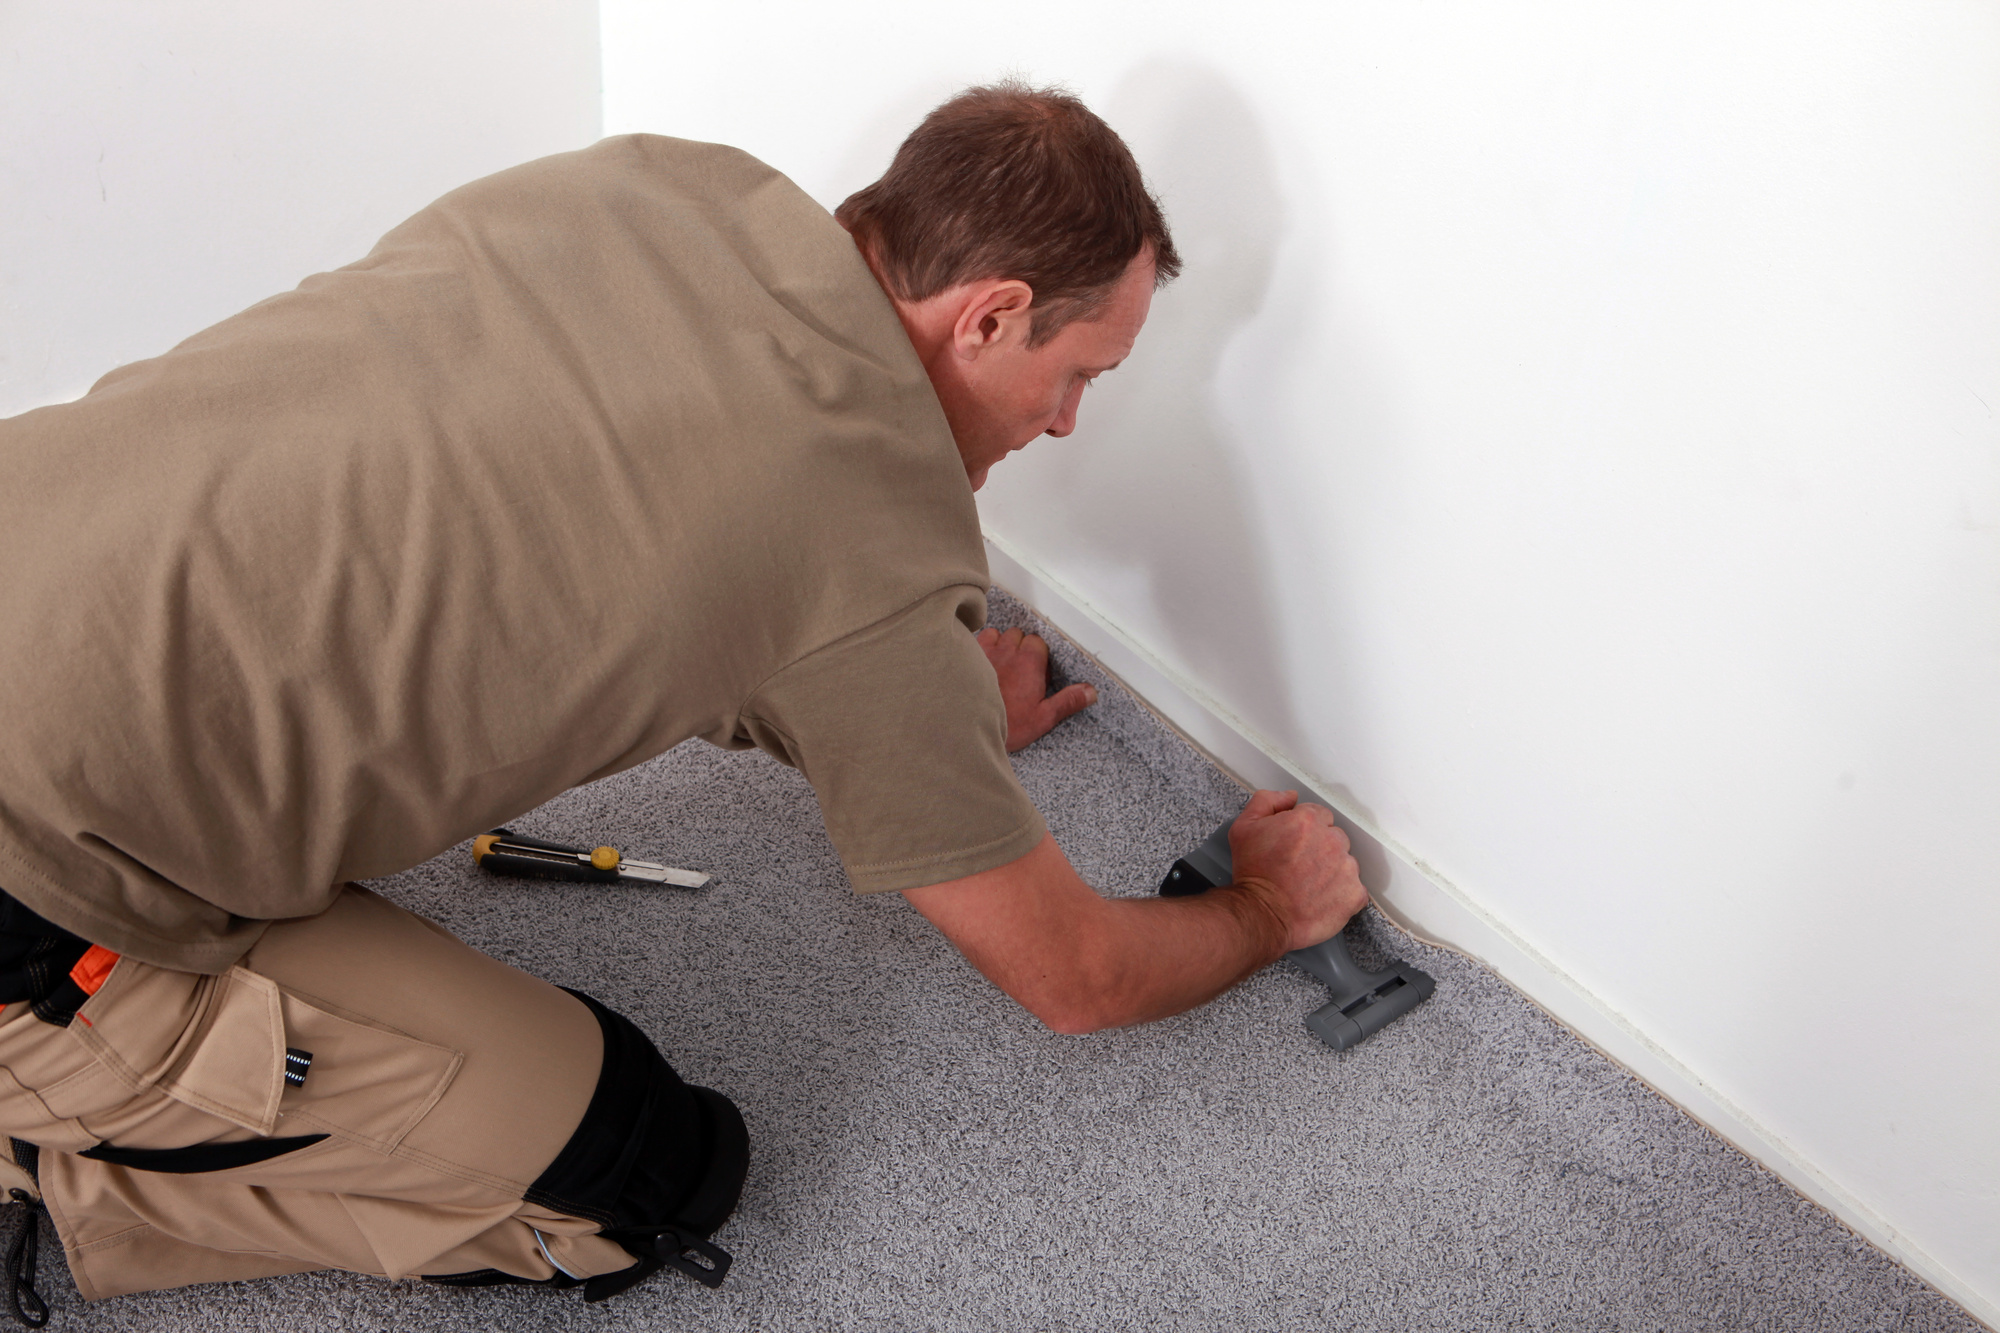 Carpet fitter laying grey carpet over carpet grippers using carpet fitting tools